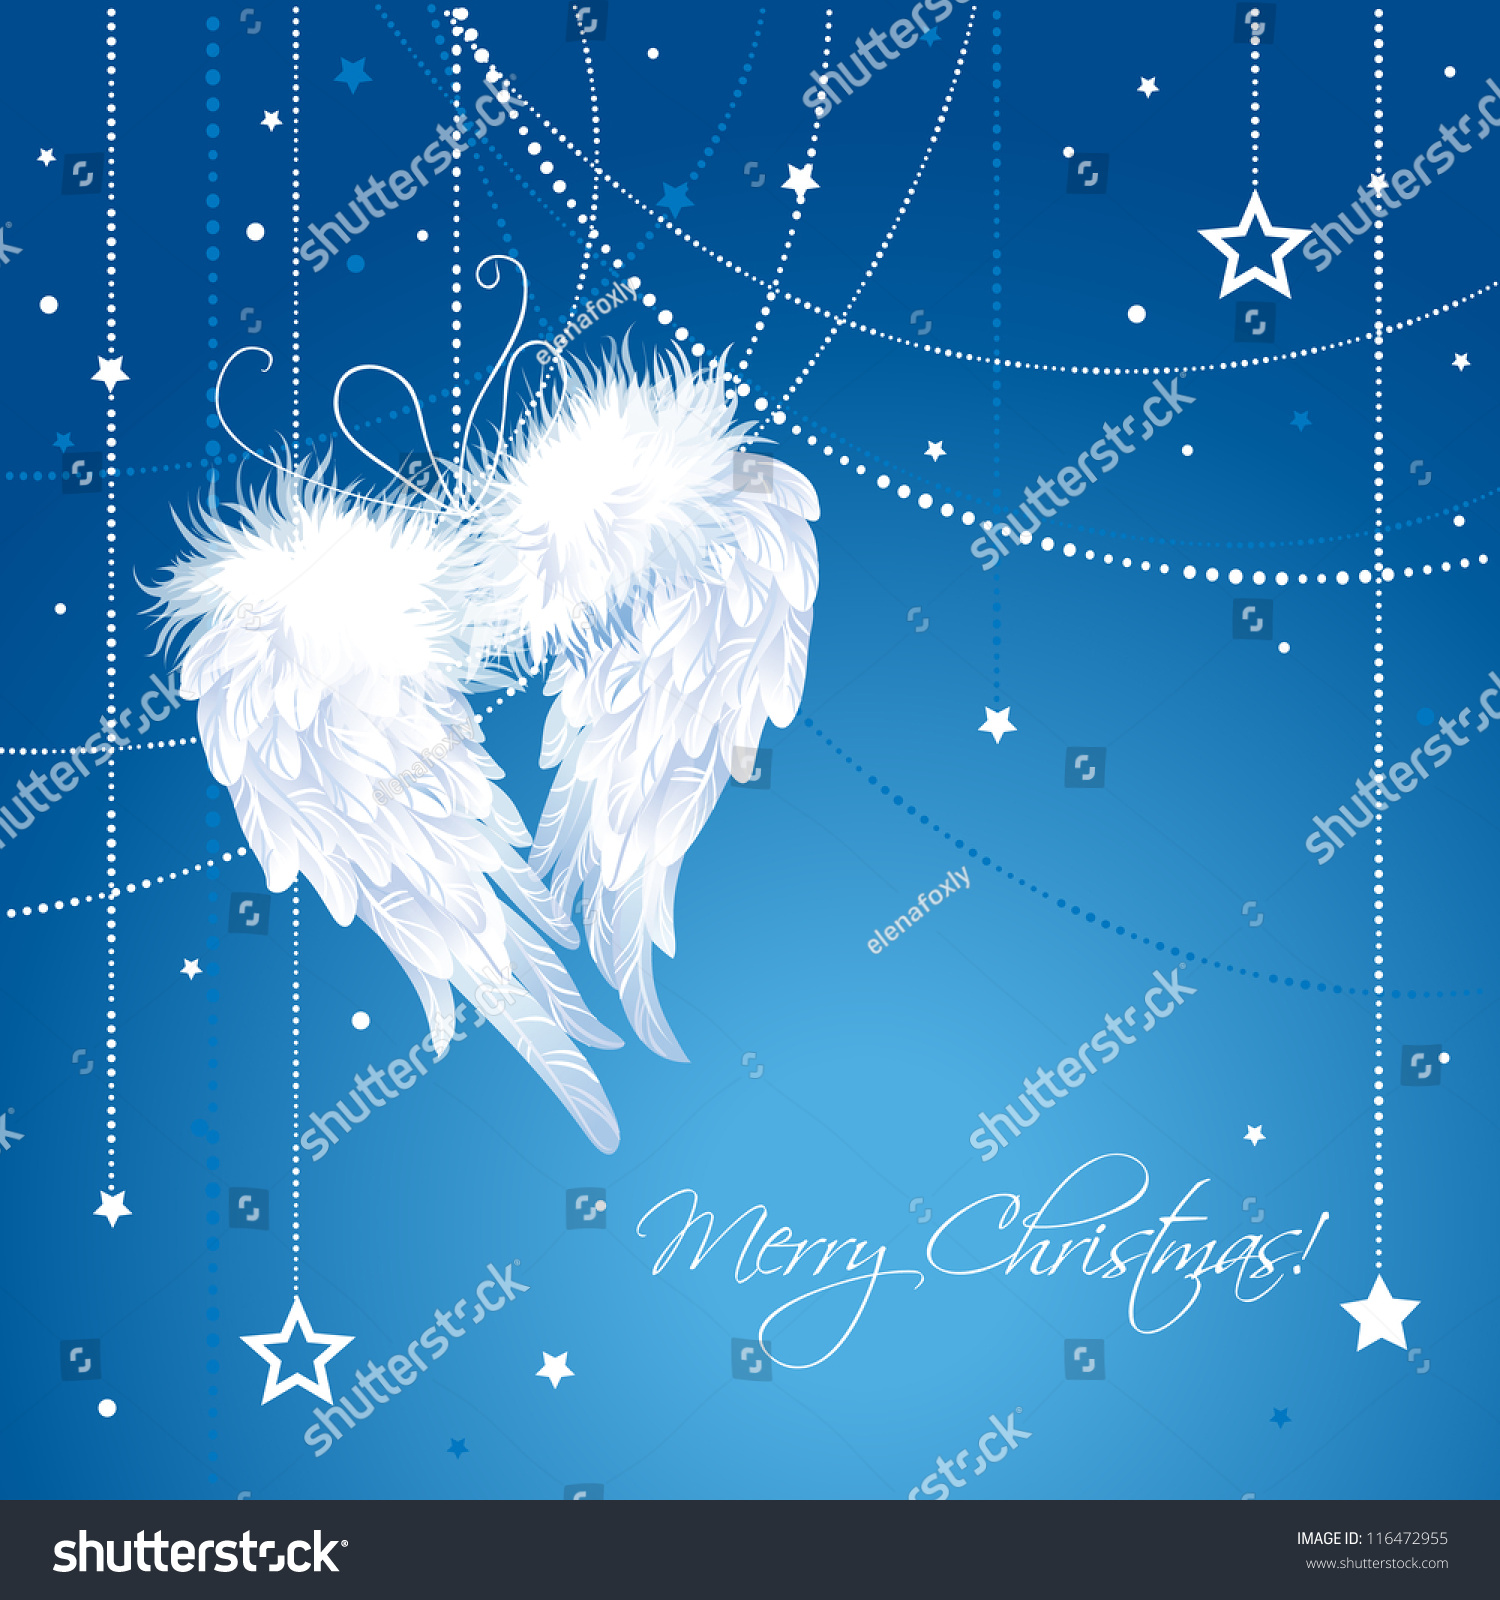 Christmas Angel.Merry Christmas Angel Wings Background Greeting Stock Vector